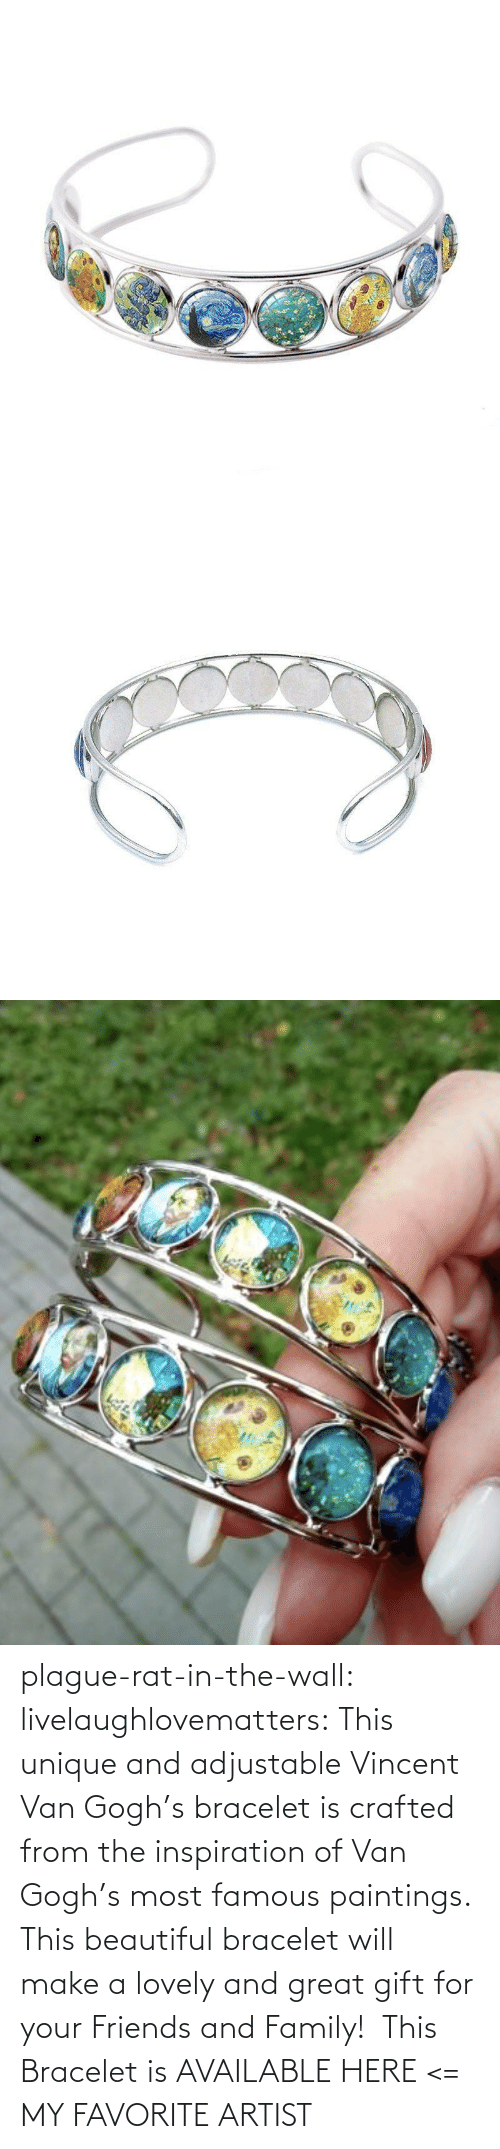 Paintings: plague-rat-in-the-wall:  livelaughlovematters: This unique and adjustable Vincent Van Gogh's bracelet is crafted from the inspiration of Van Gogh's most famous paintings. This beautiful bracelet will make a lovely and great gift for your Friends and Family!  This Bracelet is AVAILABLE HERE <=  MY FAVORITE ARTIST